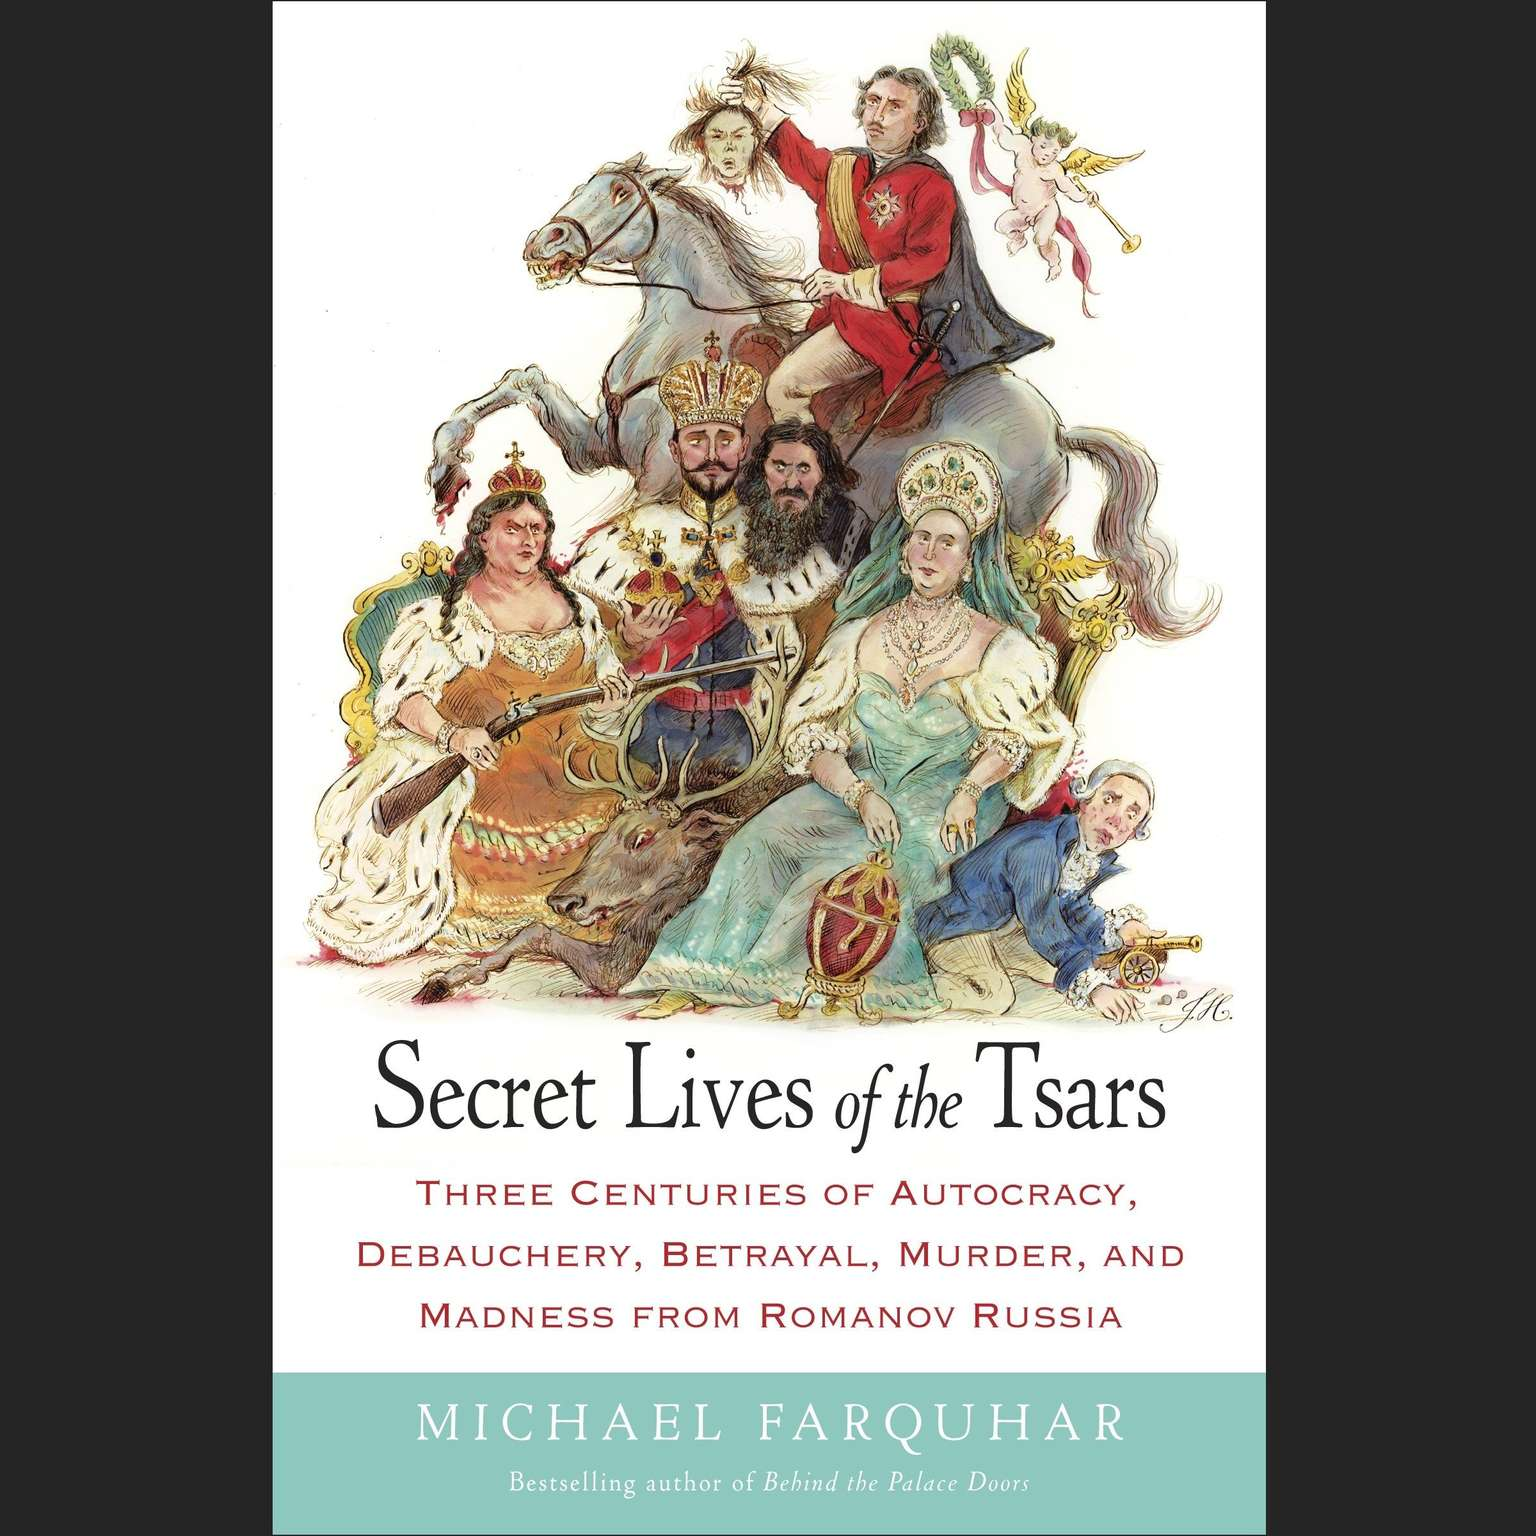 Printable Secret Lives of the Tsars: Three Centuries of Autocracy, Debauchery, Betrayal, Murder, and Madness from Romanov Russia Audiobook Cover Art